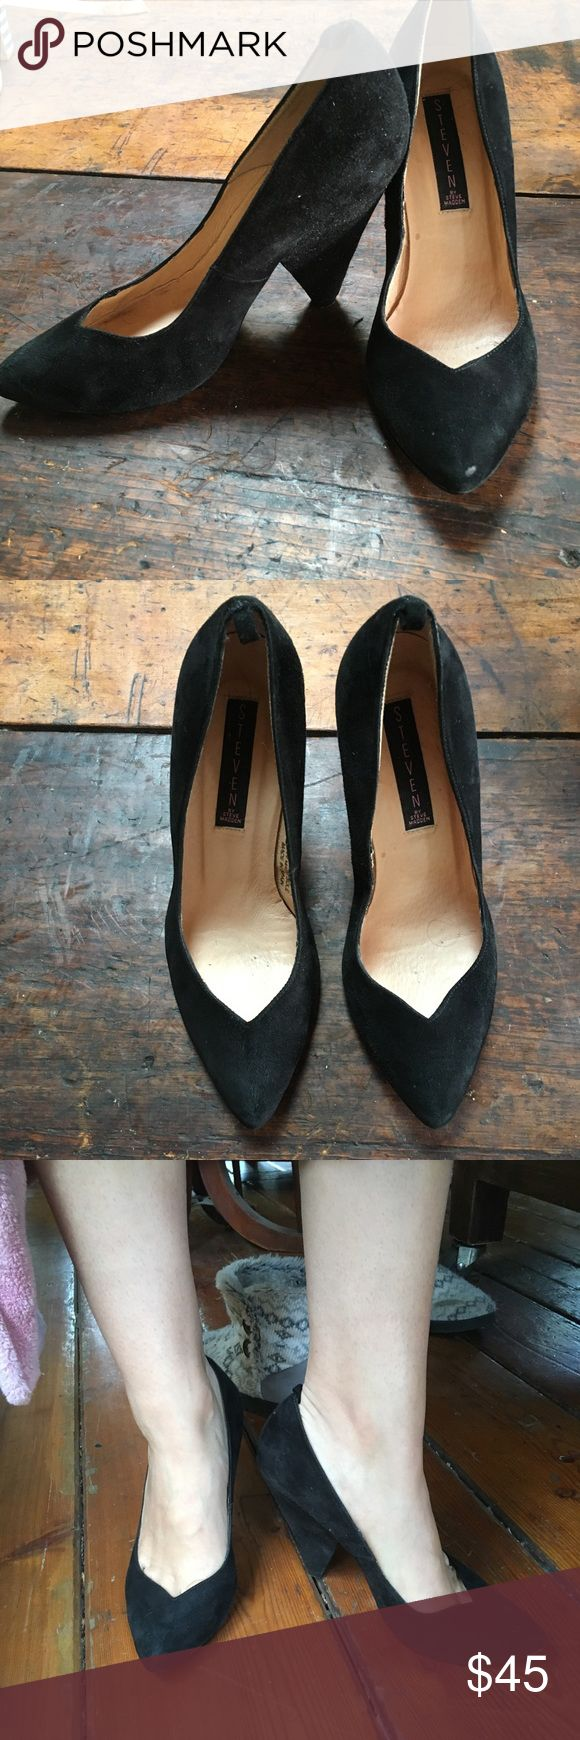 Steve Madden pointed toe black heels leather These are SO classic and elegant. They Are the perfect pair of black heels. Lightly worn. Real leather uppers. Steve Madden Shoes Heels